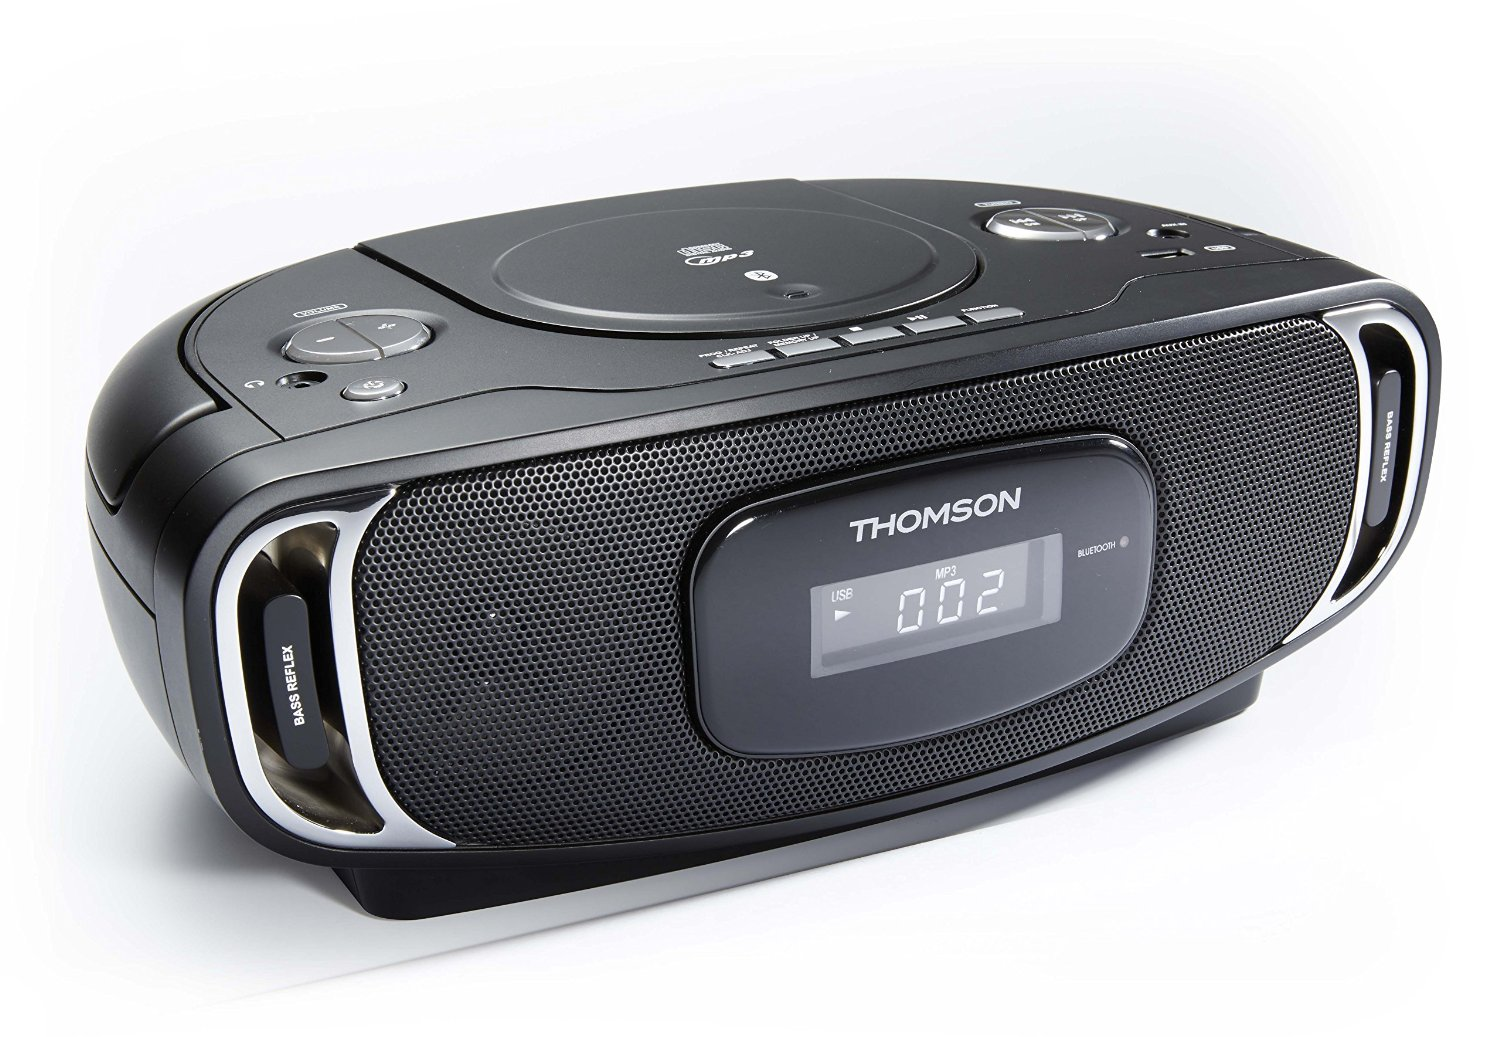 thomson tragbares radio cd mp3 player portable usb fm. Black Bedroom Furniture Sets. Home Design Ideas